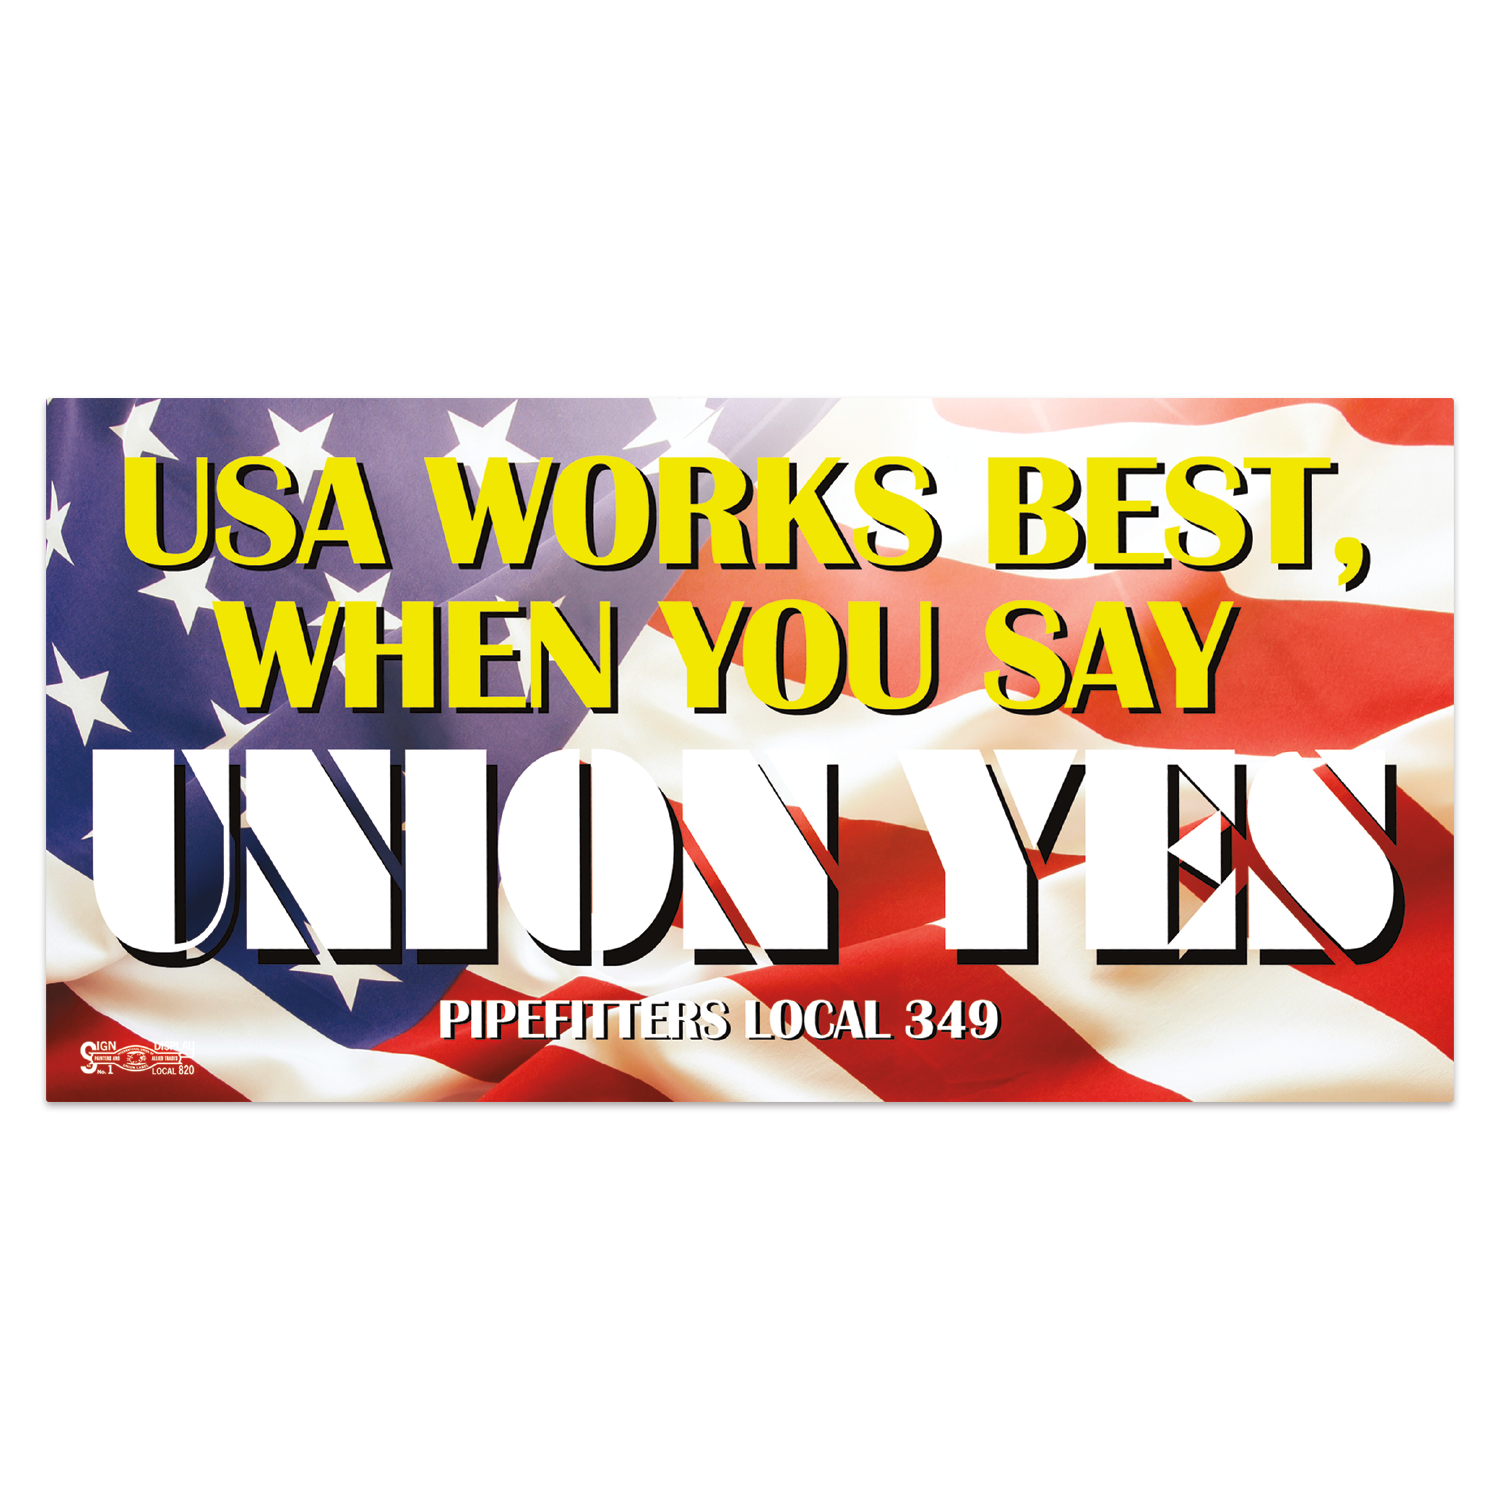 https://www.sswprinting.com/images/products_gallery_images/43734_Union-Yes_hi-res.png